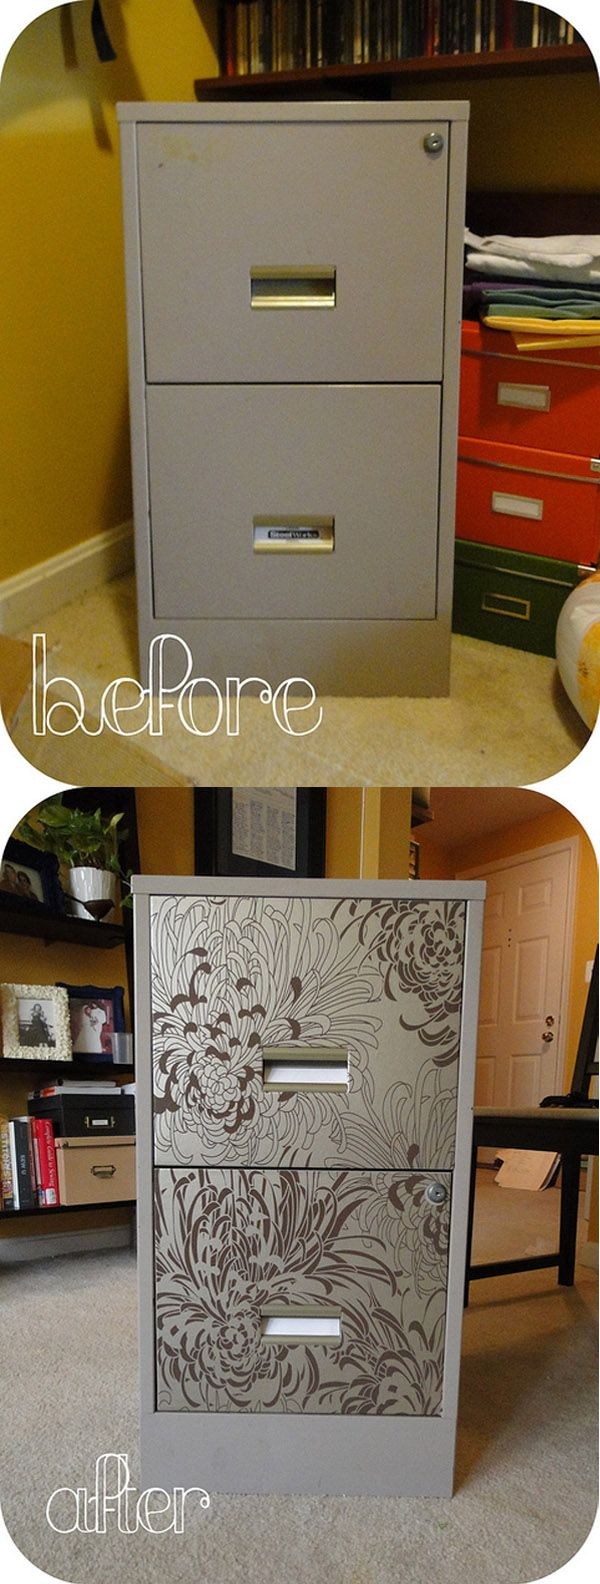 Diy office cubicle door - Diy File Cabinet Makeover Http Www Fabricpaperglue Com